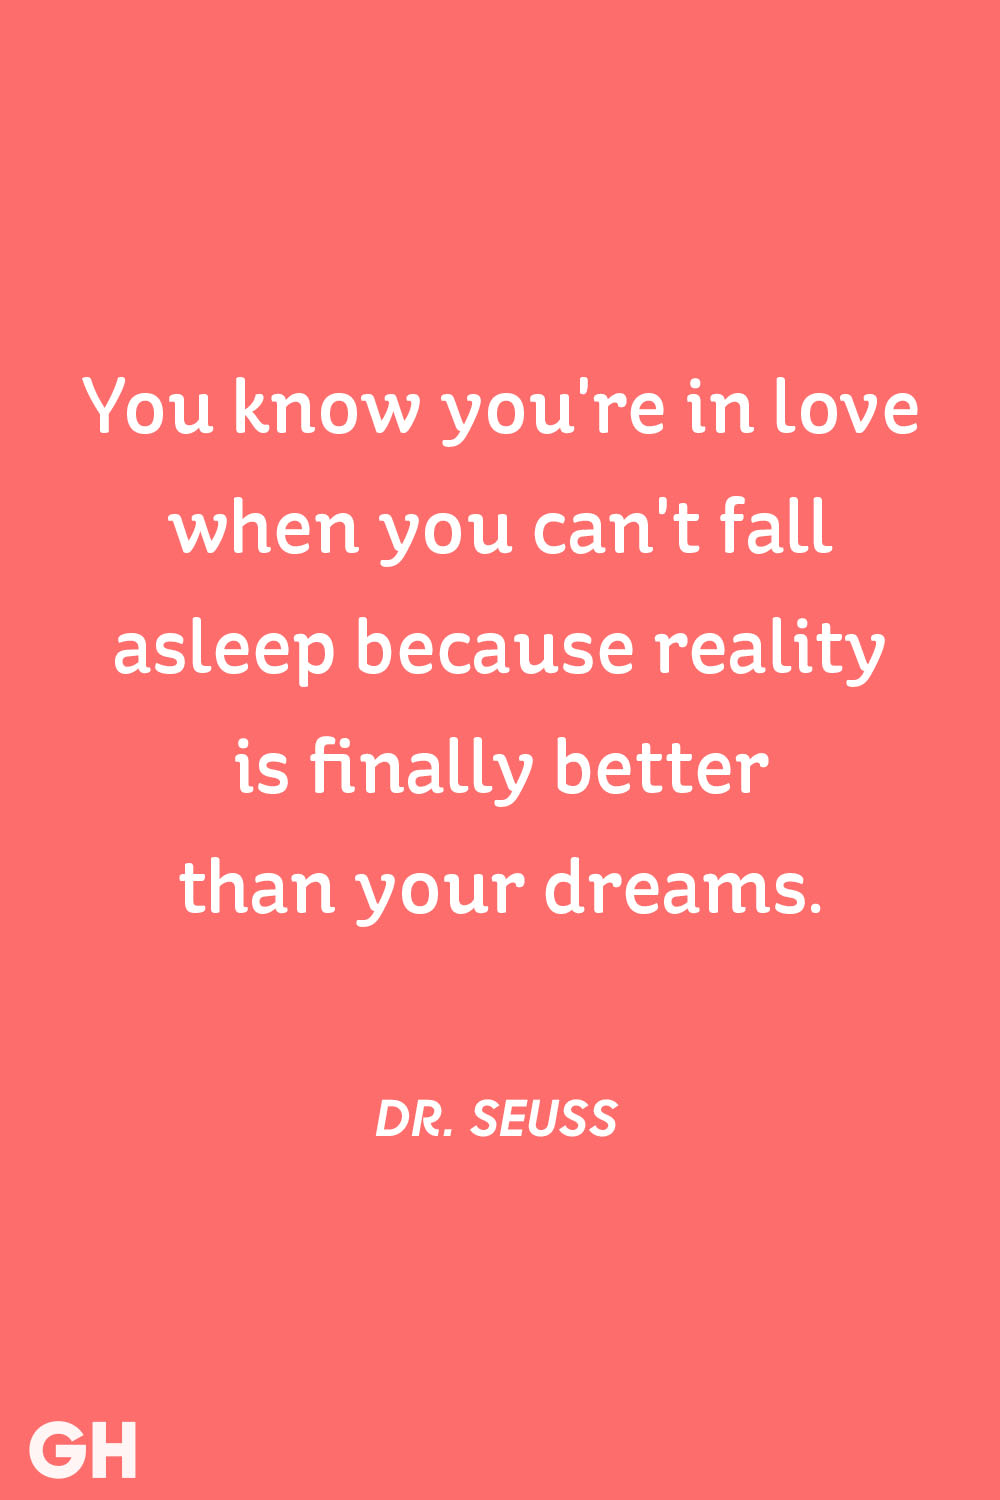 Love Quote Dr Seuss 30 Cute Valentine's Day Quotes  Best Romantic Quotes About